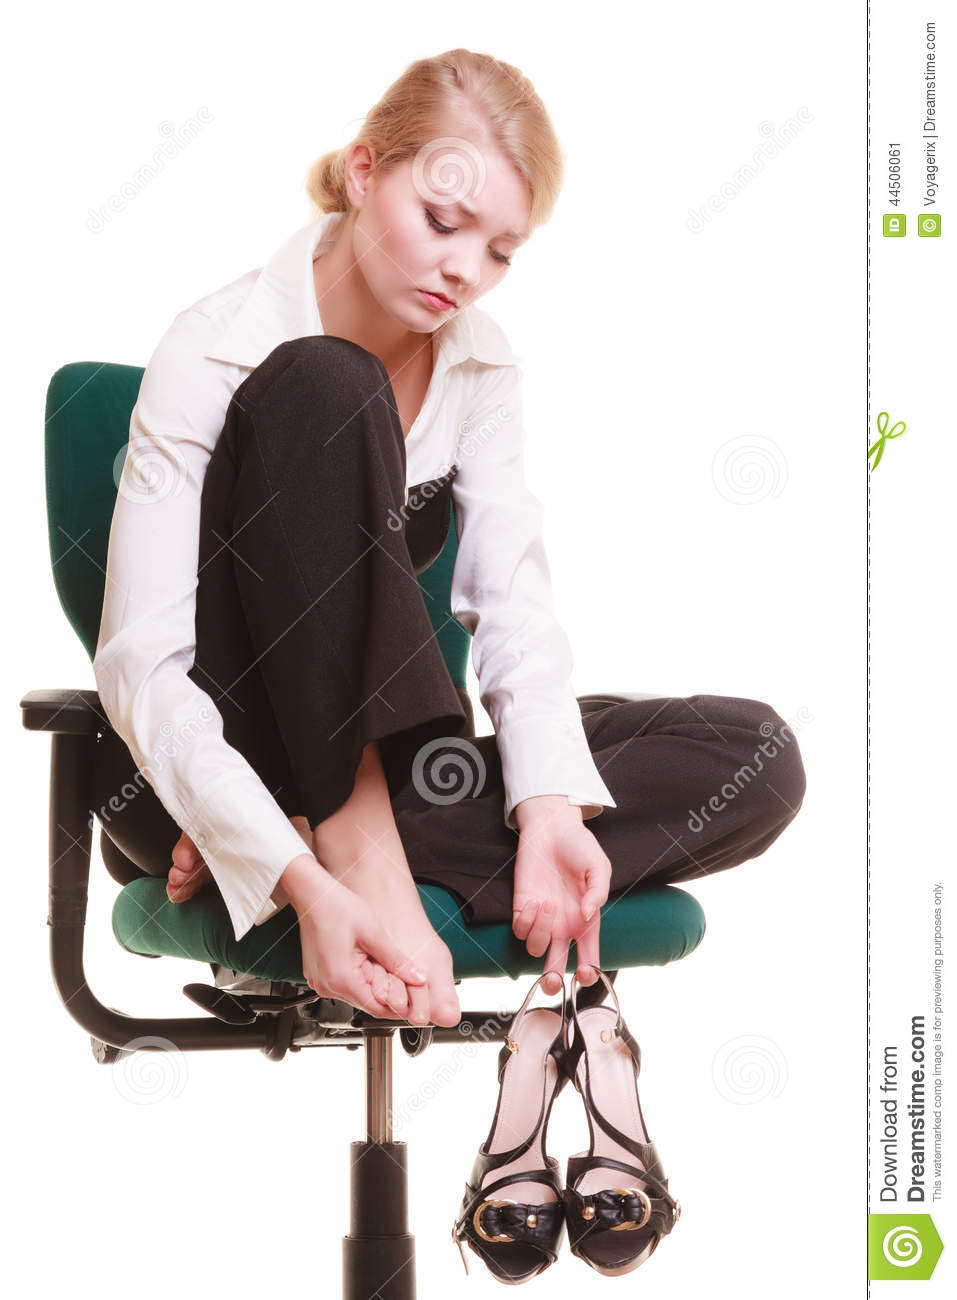 office max chair covers for hire staffordshire break from work. tired businesswoman with leg pain stock photo - image: 44506061